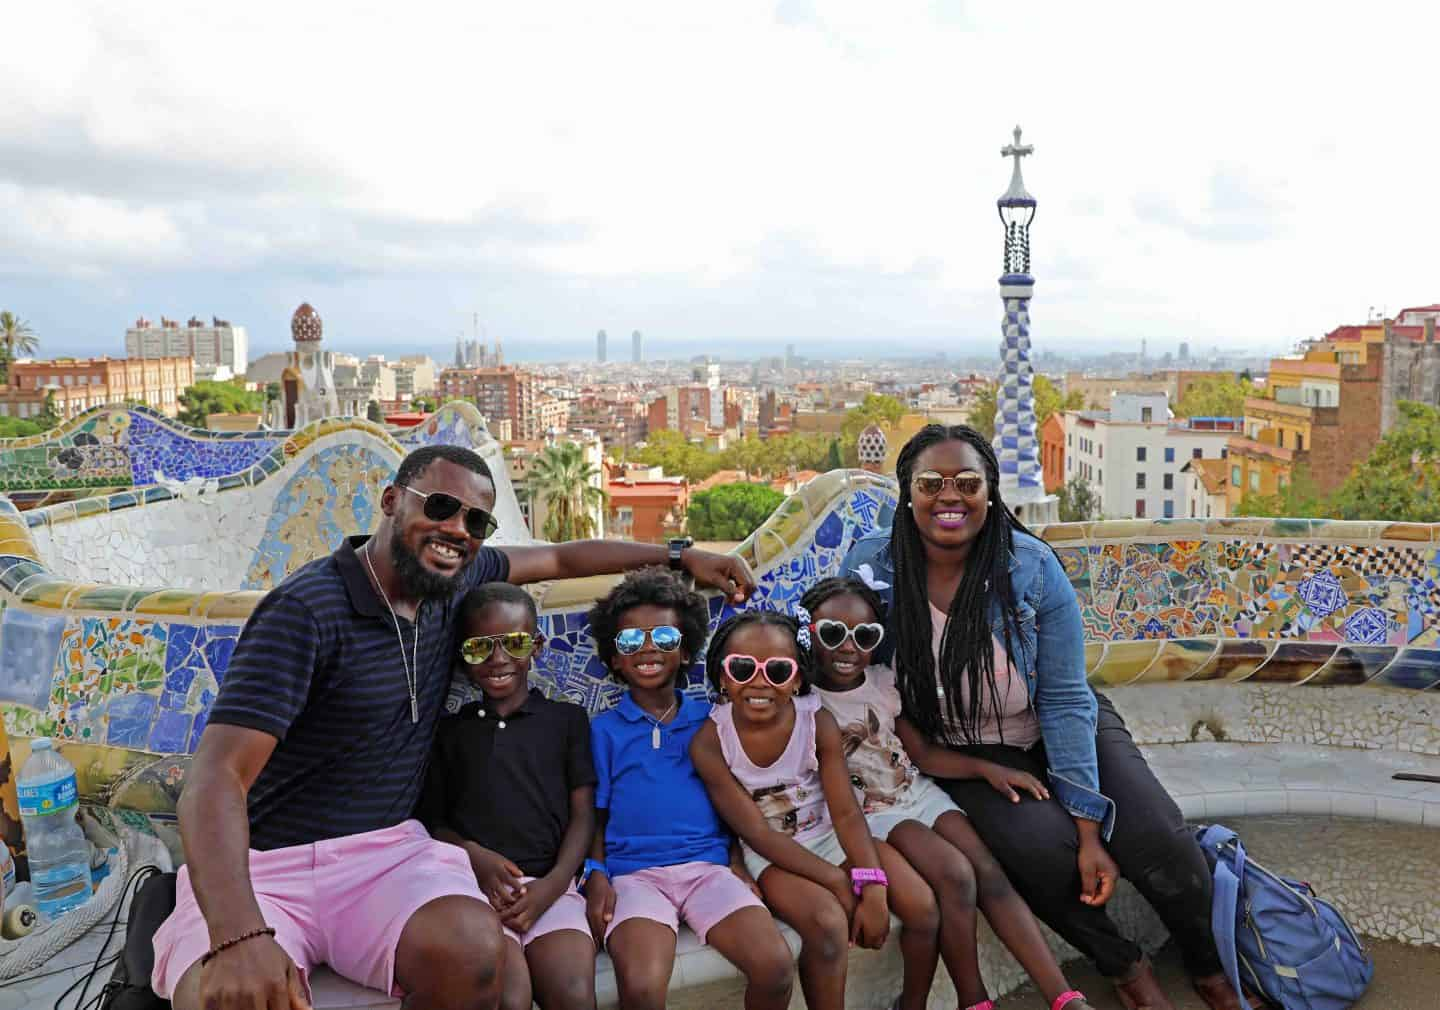 Barcelona With Kids Guide: Where To Stay & Eat + What To Do